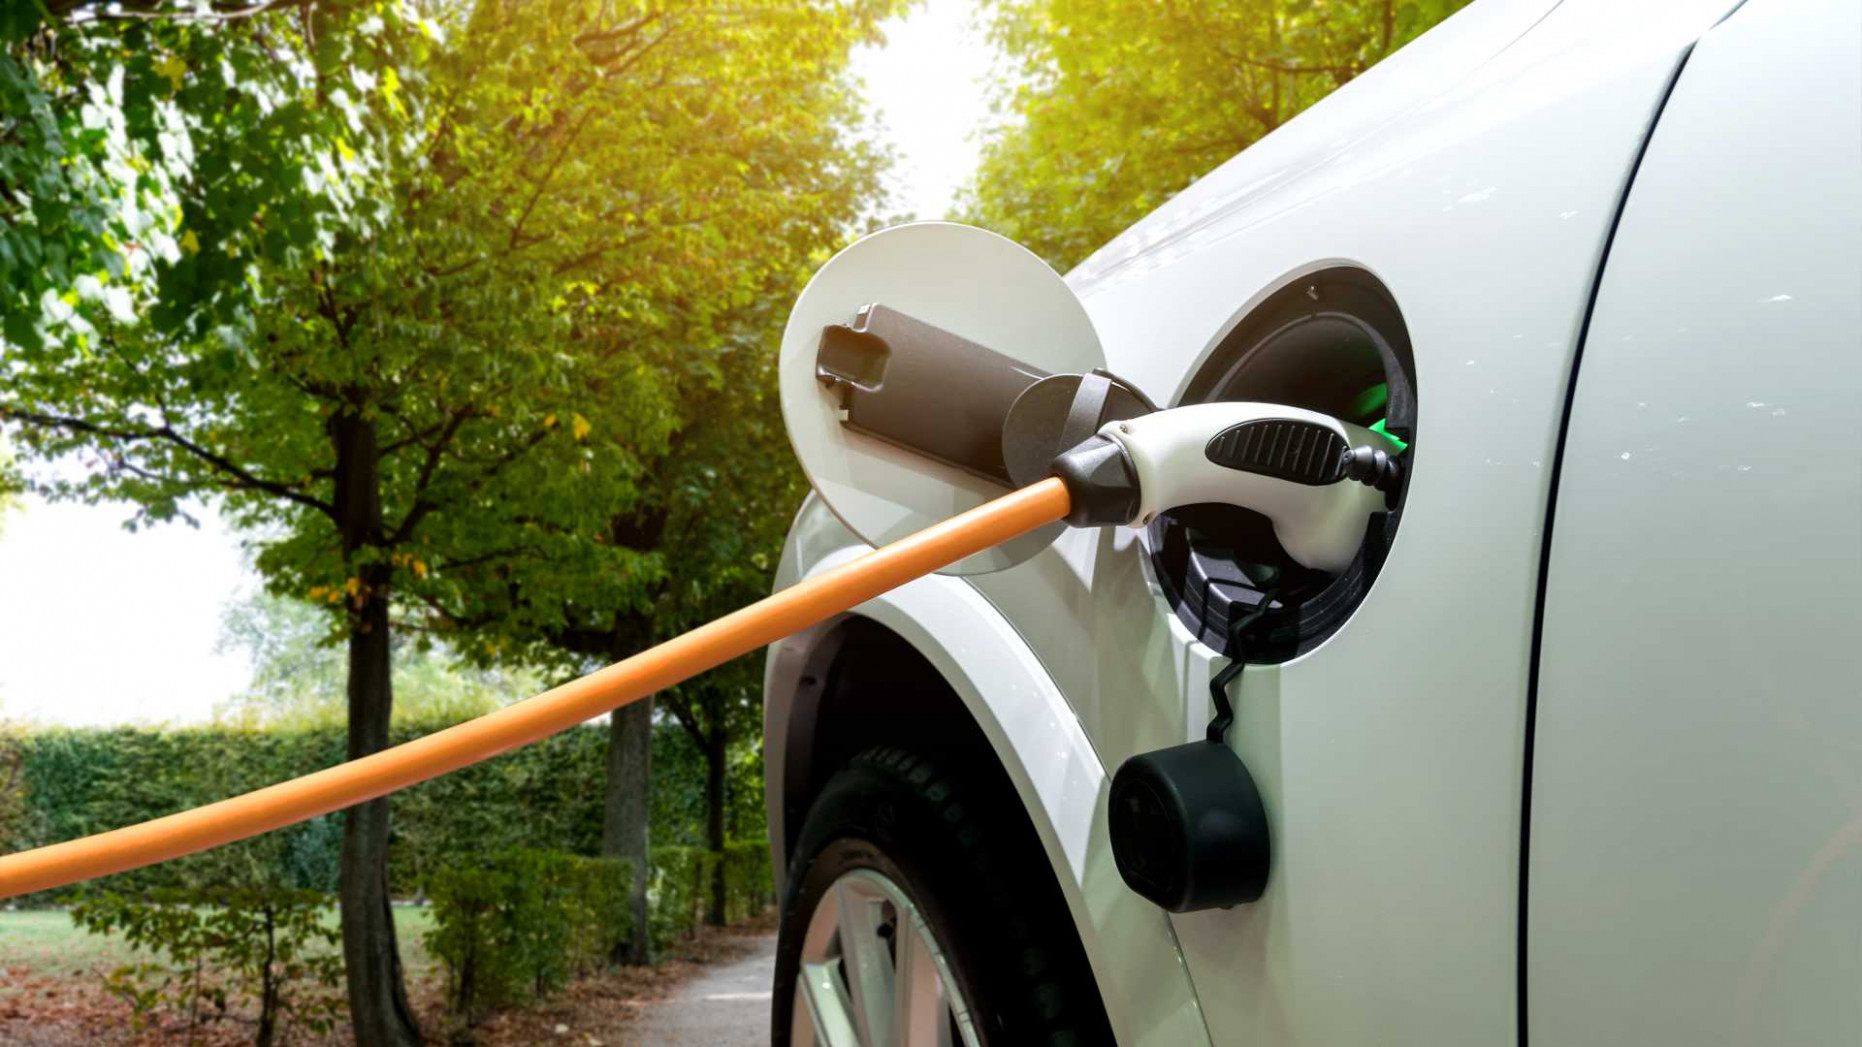 What If You Want To Drive An Electric Vehicle But Don't Have ..